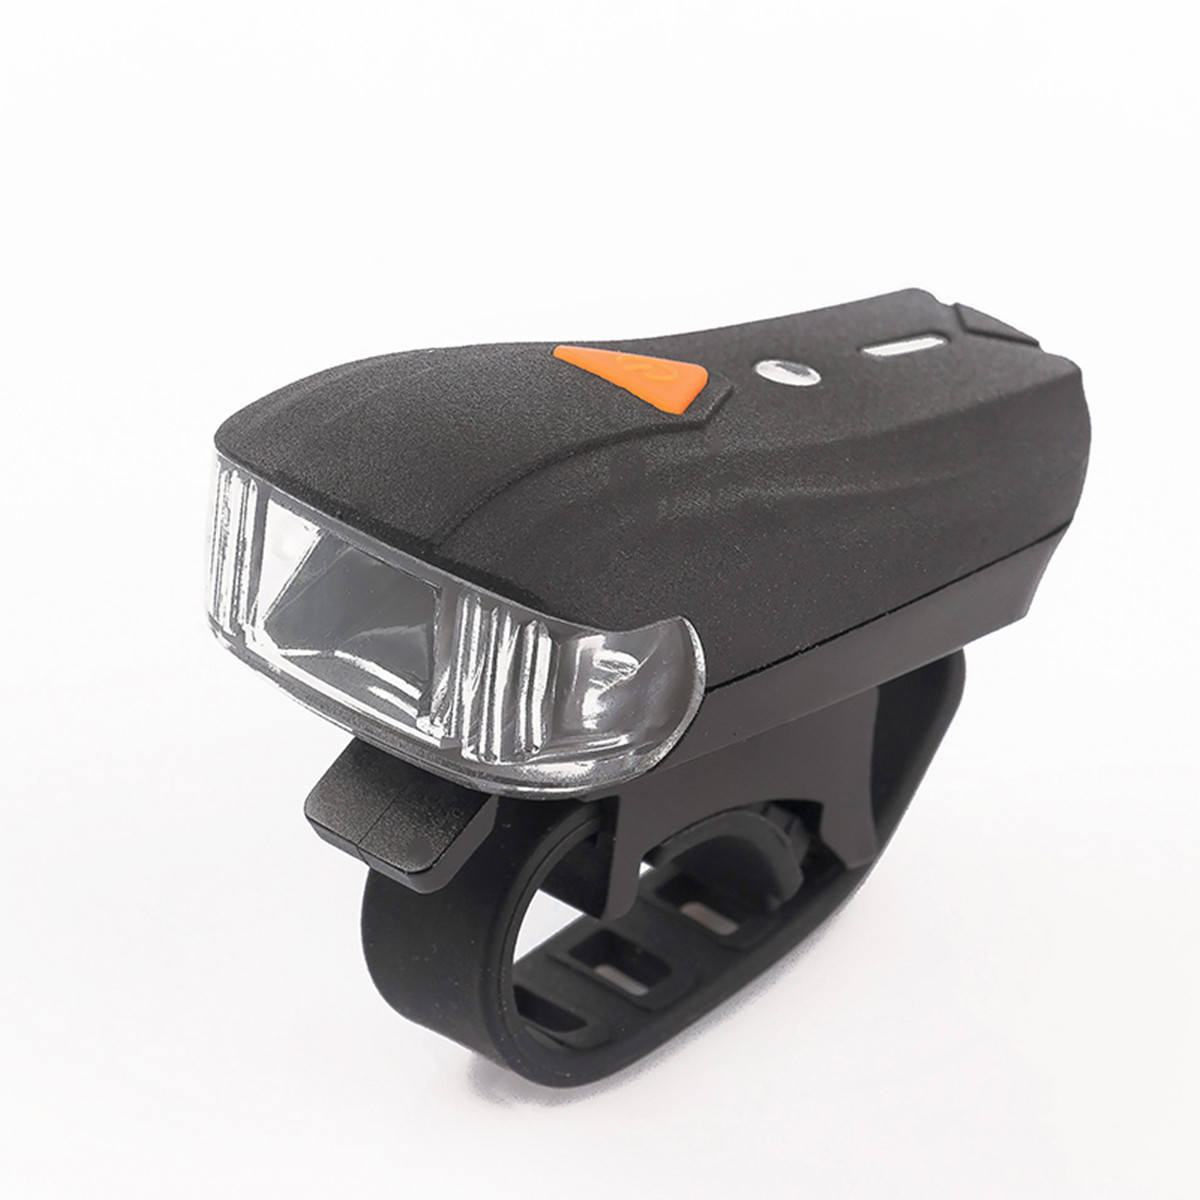 XANES 600LM Headlight LED Flashlight Lantern LED Bicycle Standard Smart Sensor Warning Light Bike Front Light Headlight